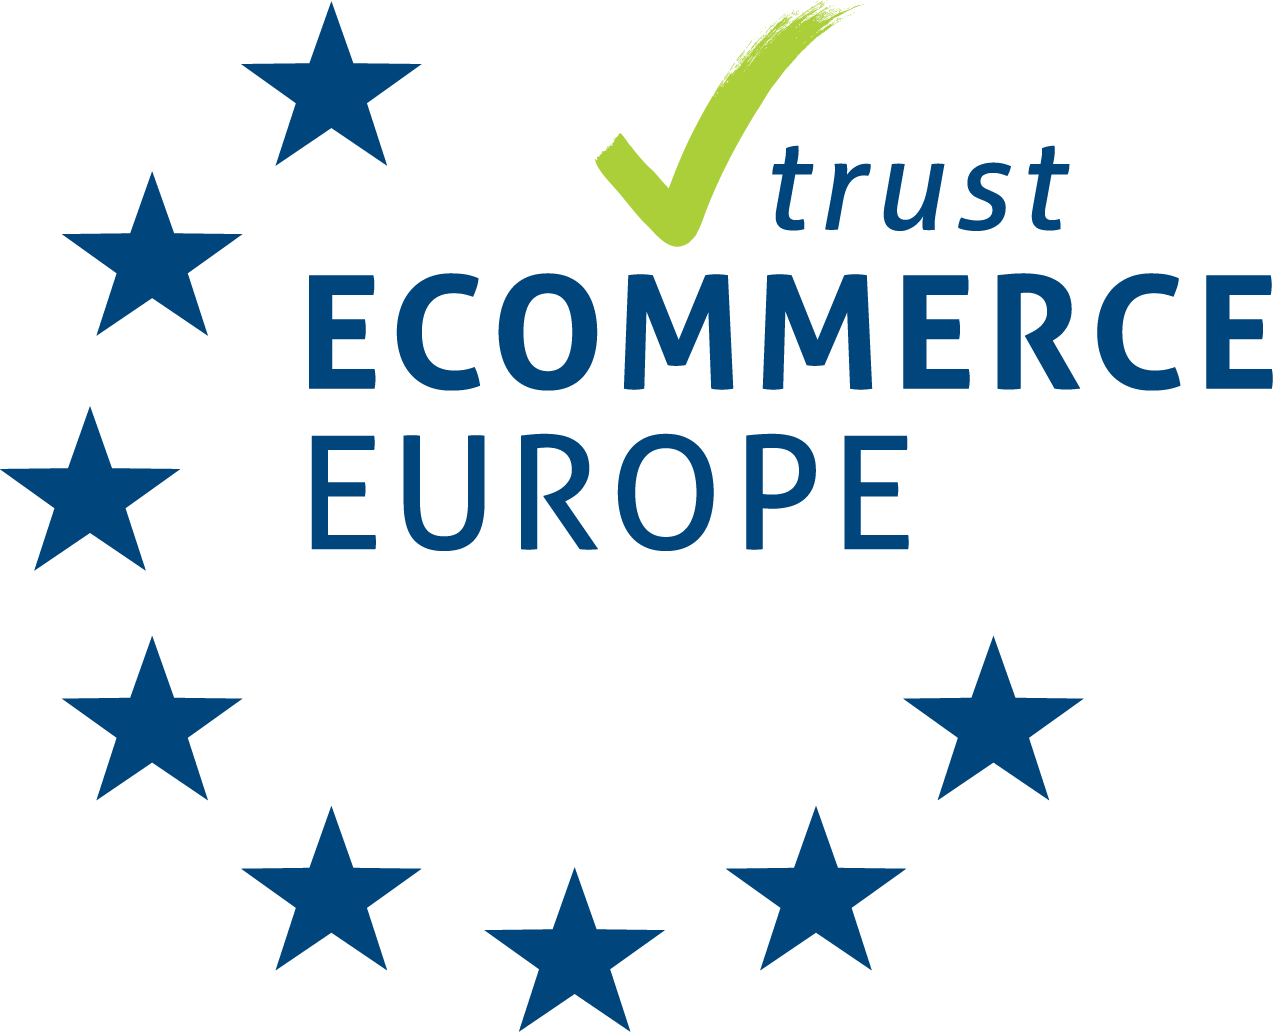 Ecommerce_Europe_icon